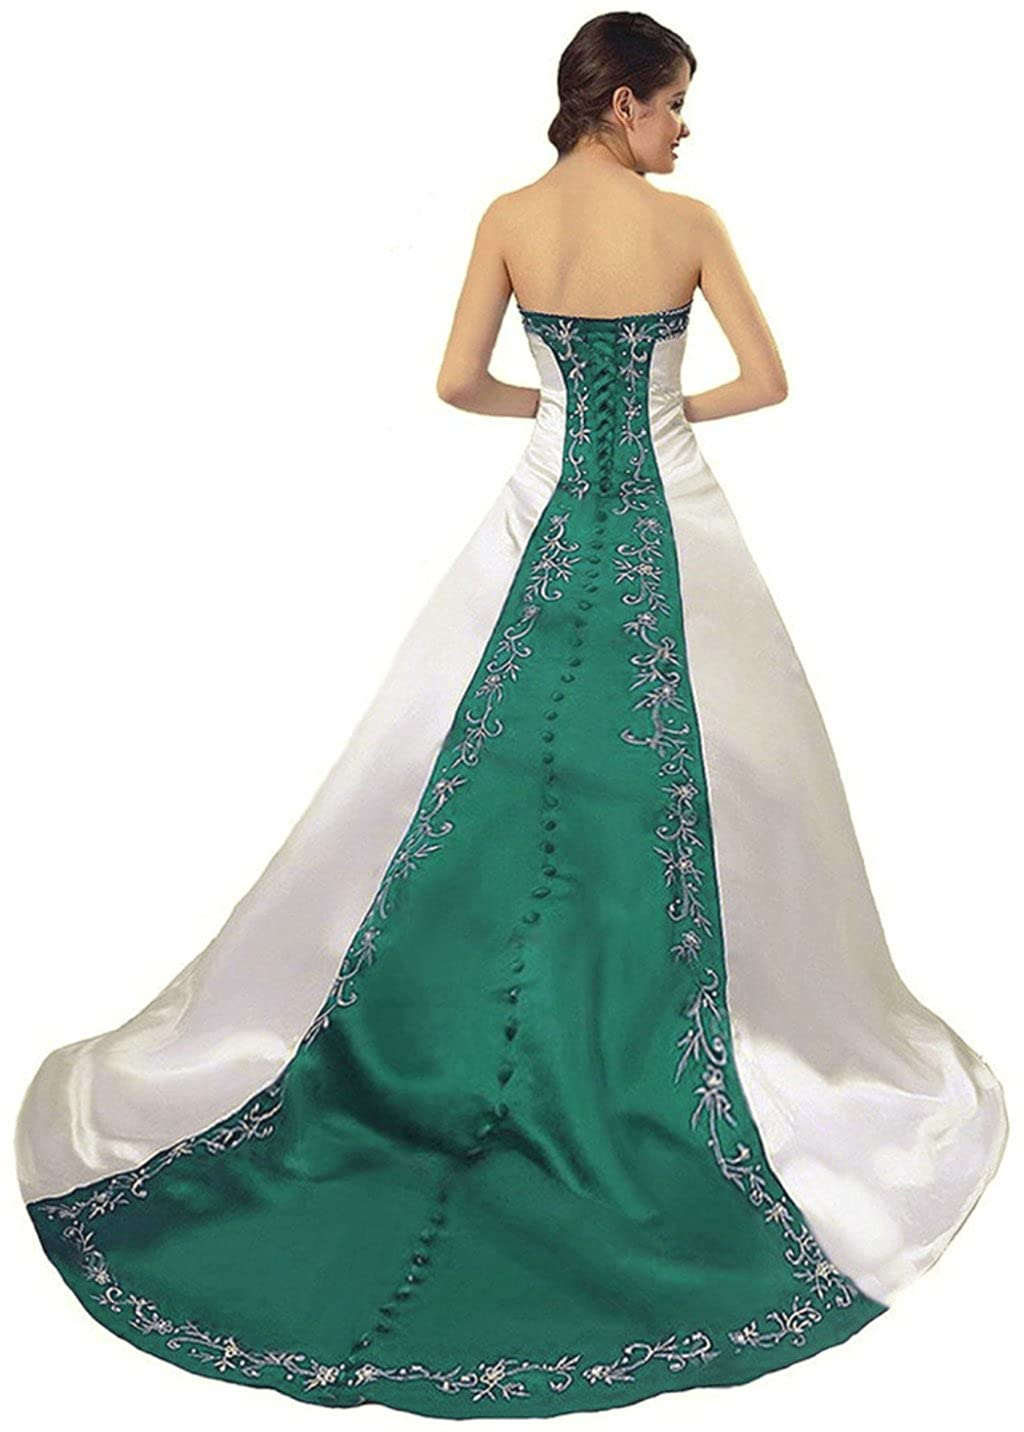 Ivory & Teal Vantexi Women's Strapless Satin Embroidery Wedding Dress Bridal Gown